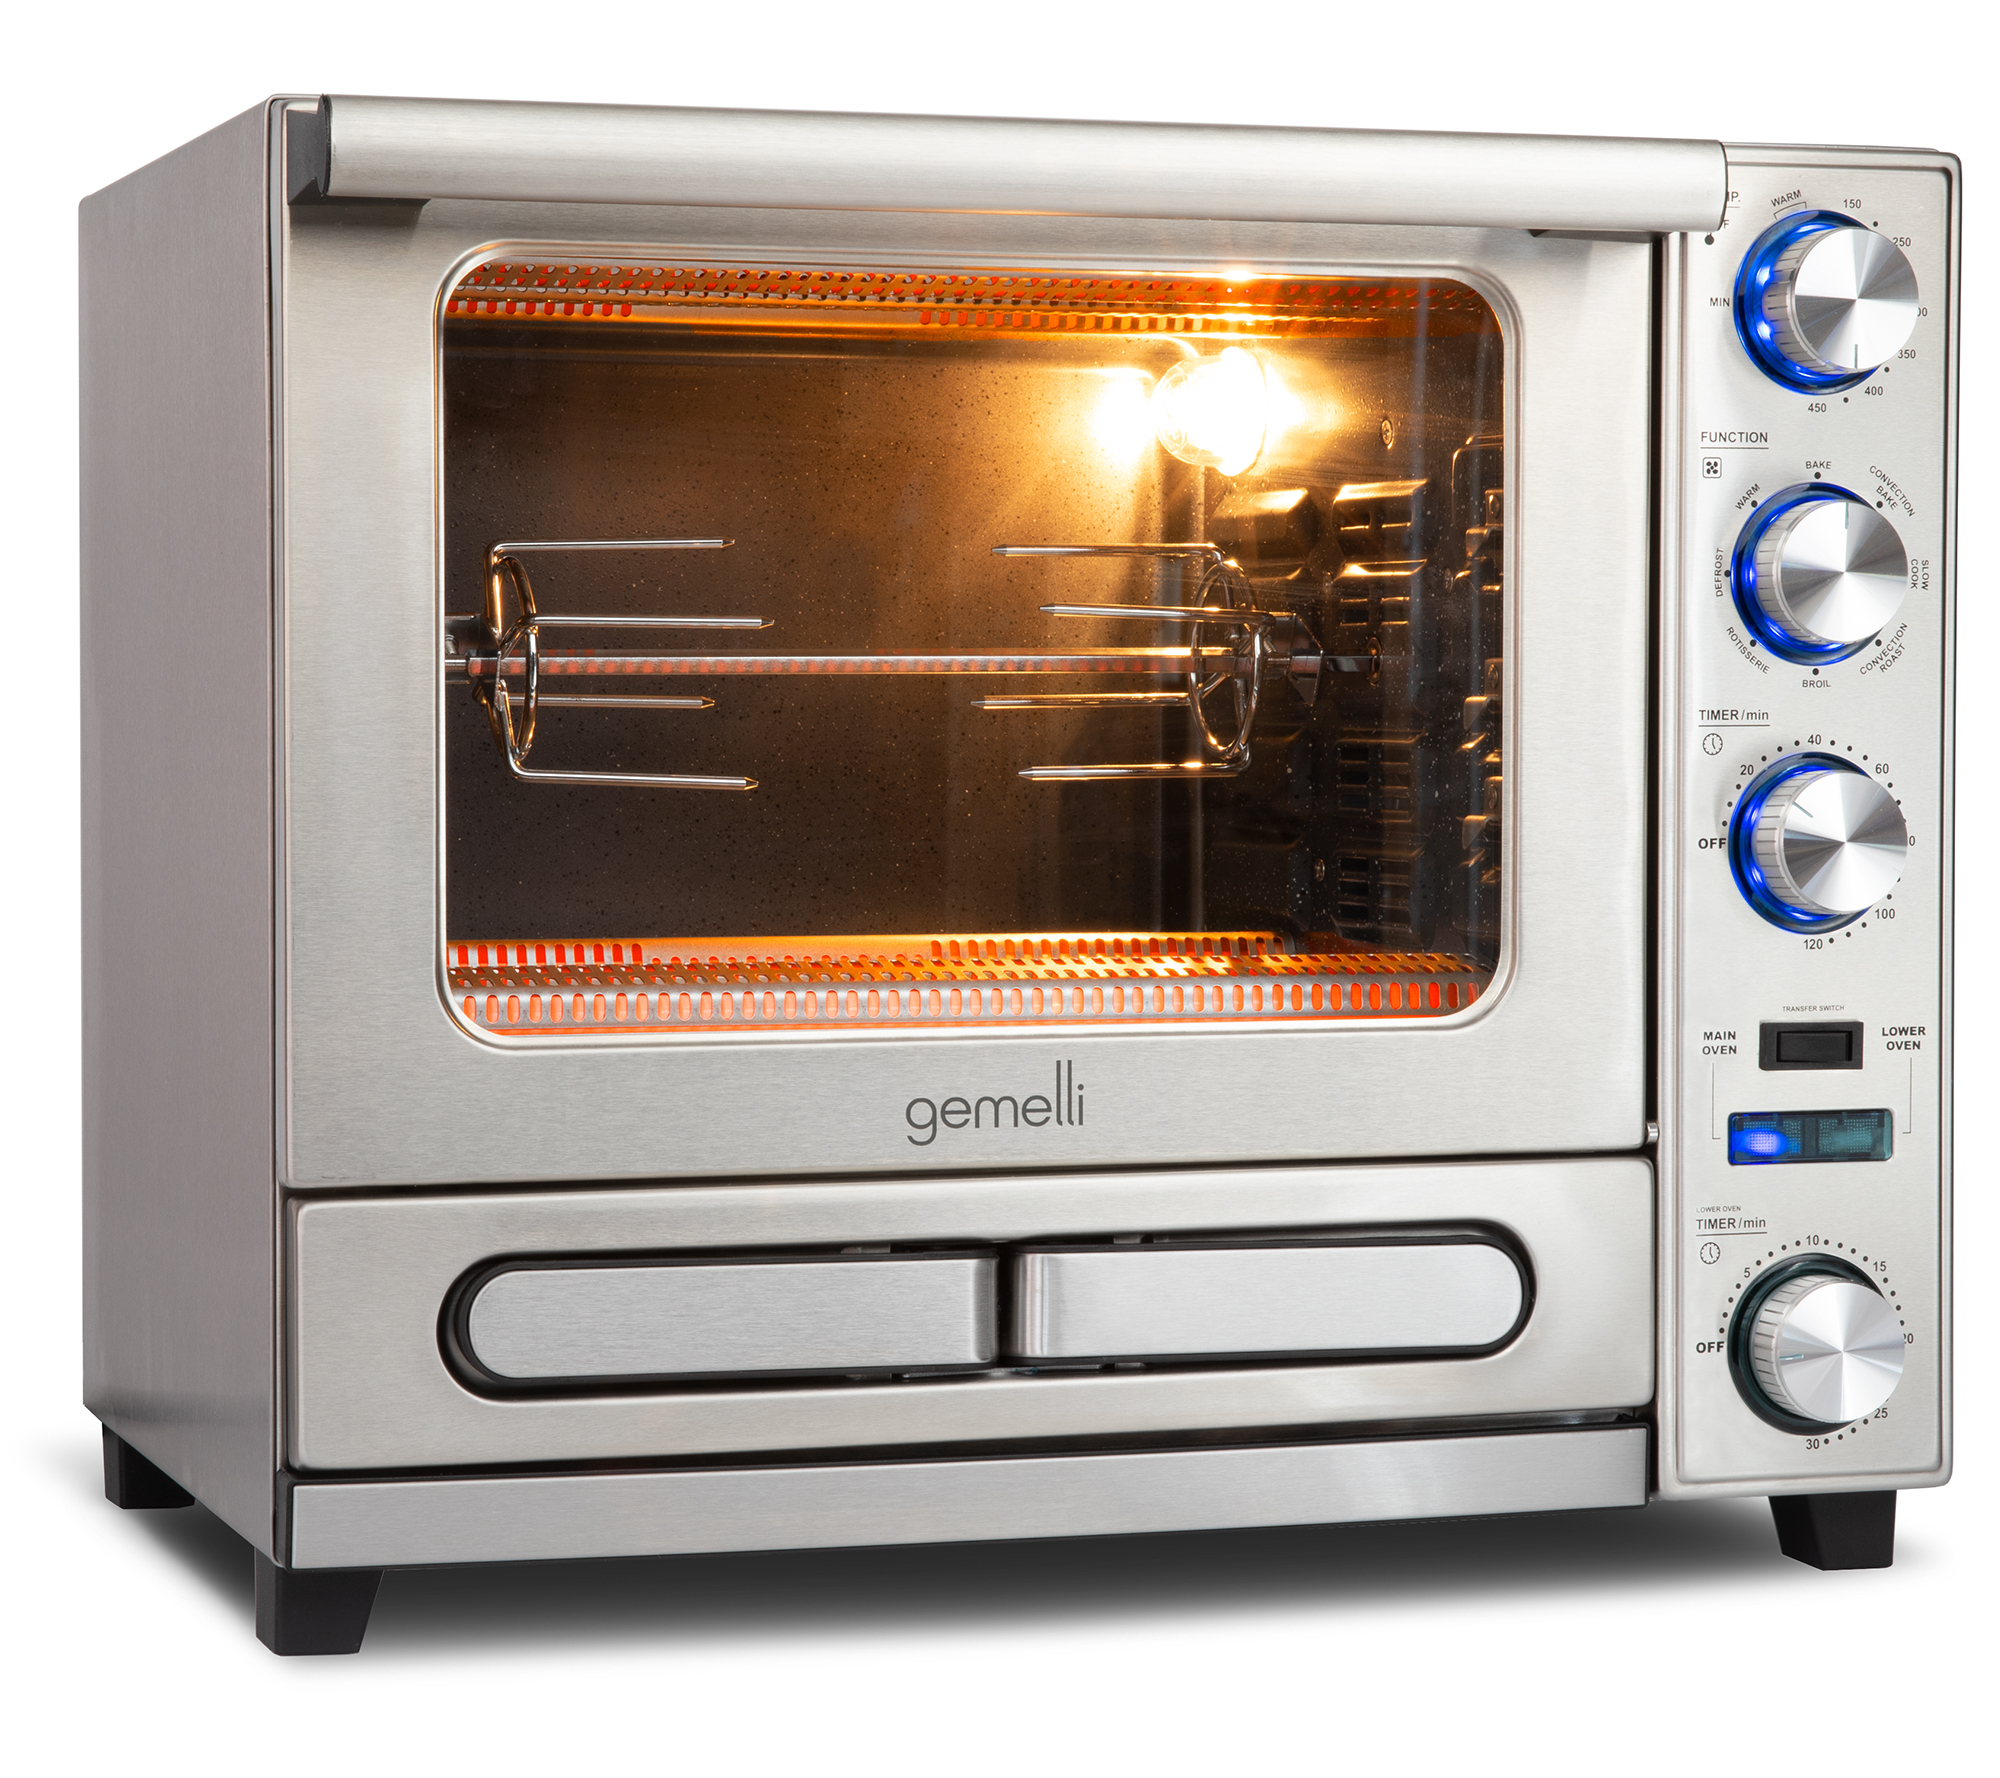 gemelli twin oven professional grade convection oven with built in rotisserie and convenience pizza drawer walmart com